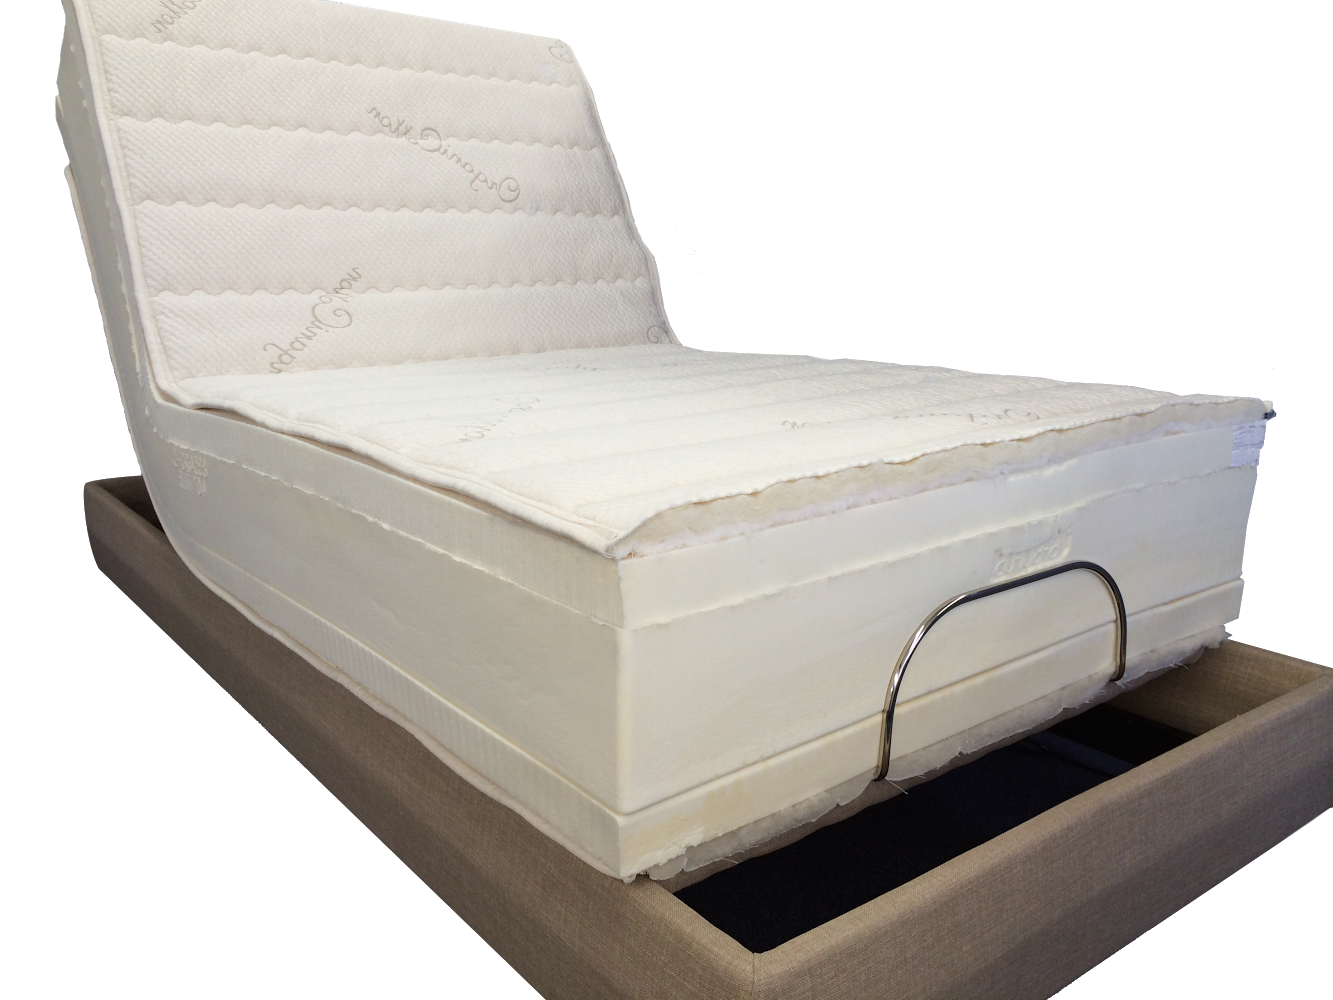 Adjustable-Beds seattle portland san francisco san jose sacramento san francisco bakersfield fresno san luis obispo latex natural organic beds foam 100% pure talalay latex